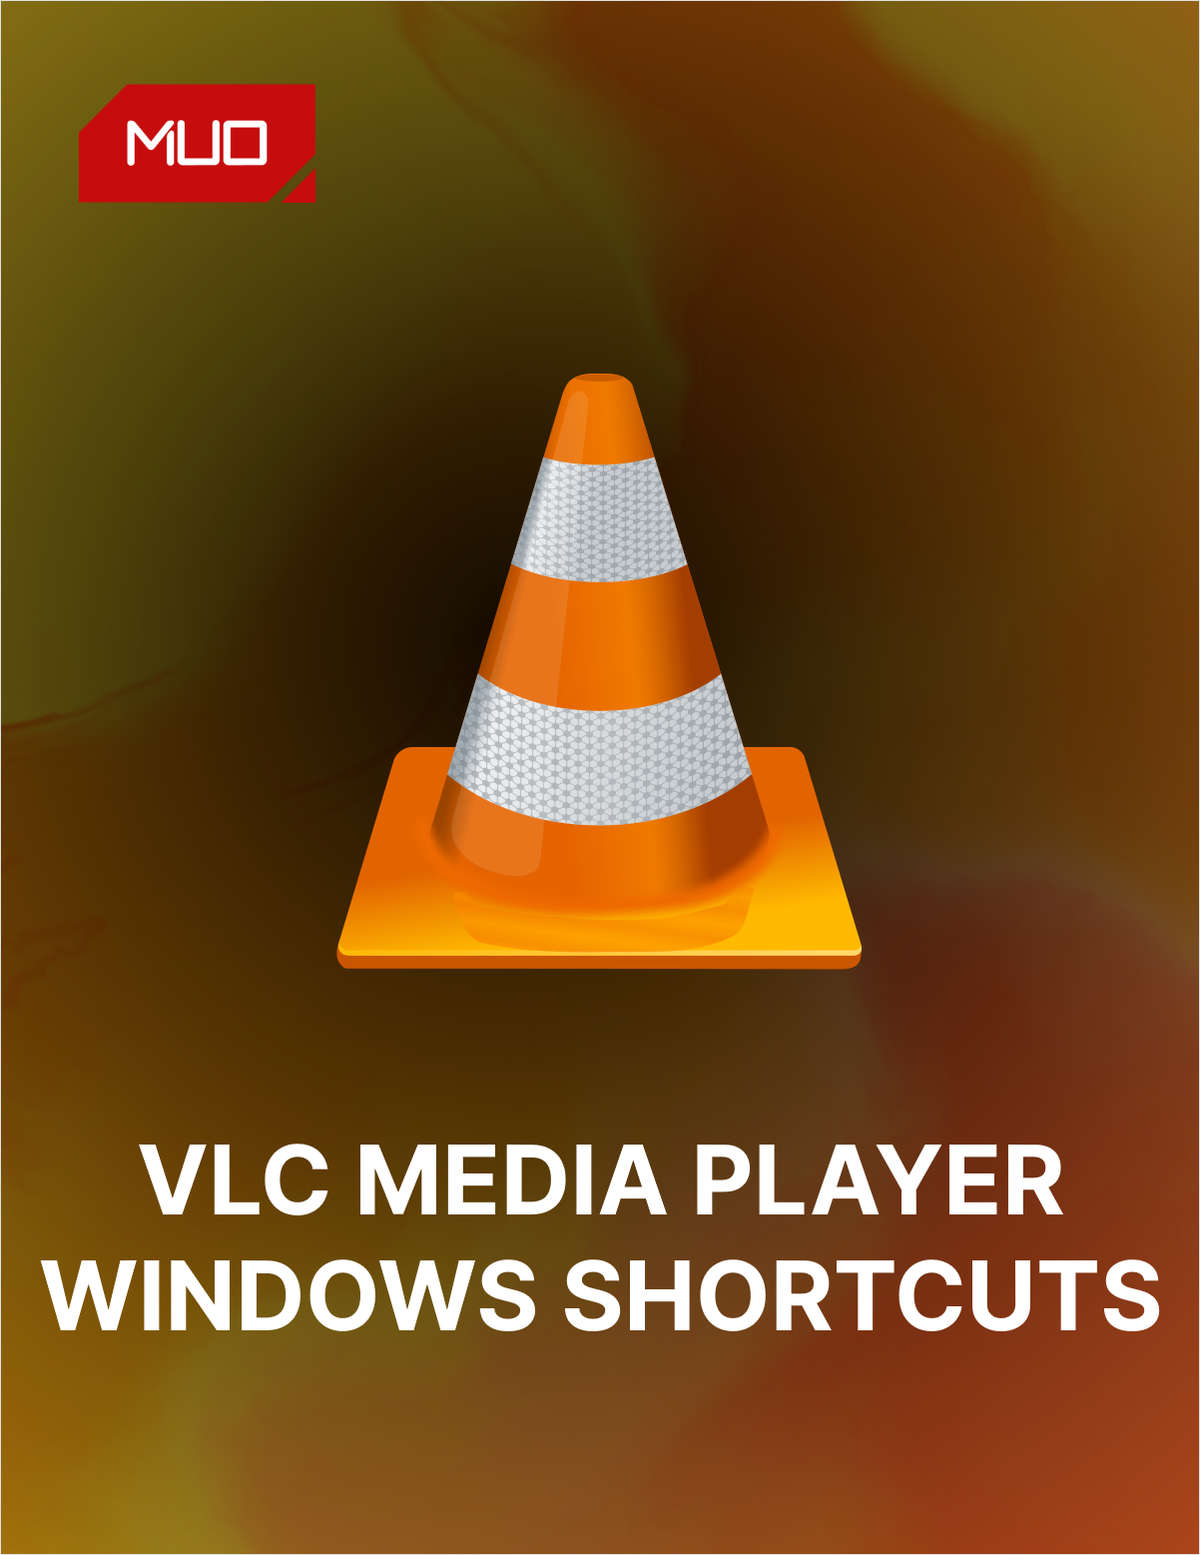 VLC Media Player Keyboard Shortcuts for Windows